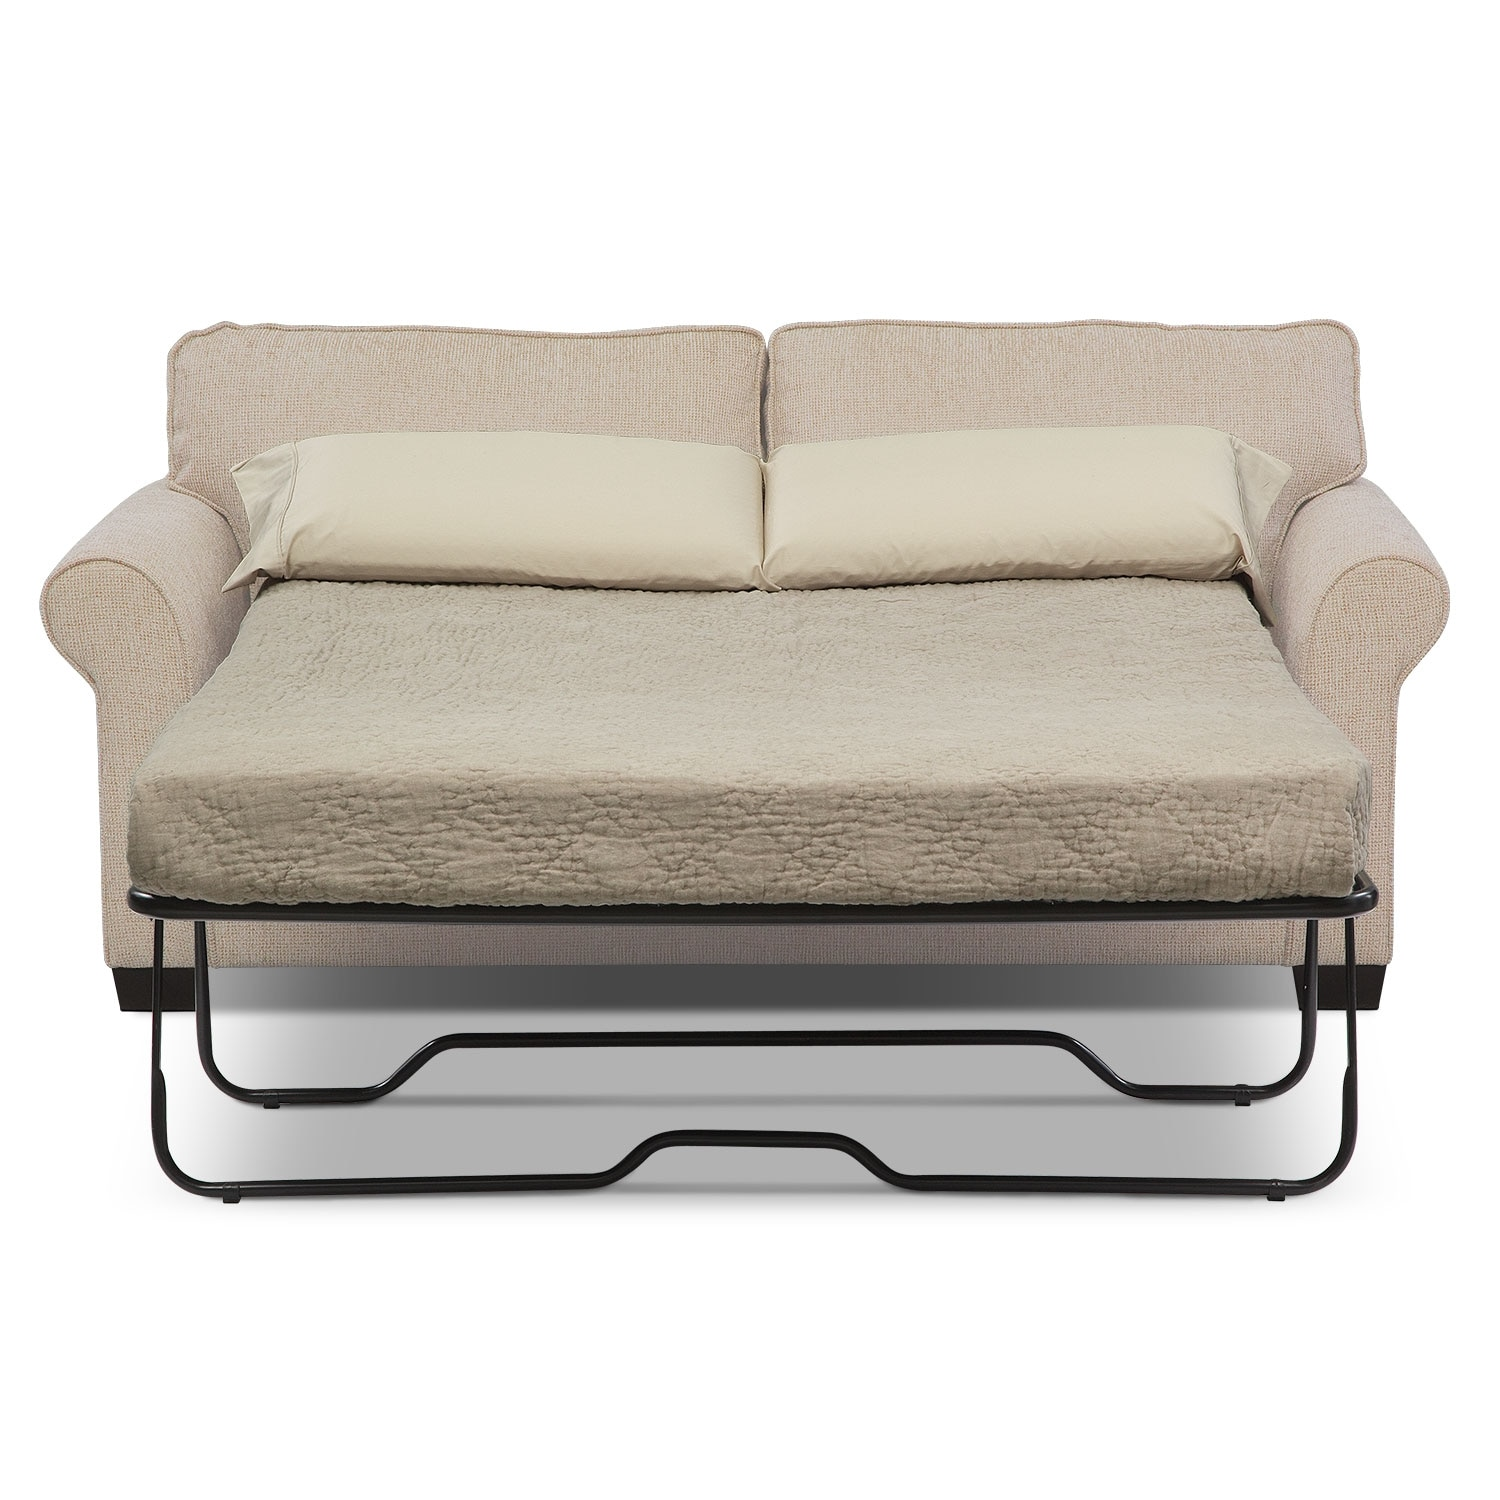 Fletcher Full Innerspring Sleeper Sofa Beige American Signature Furniture